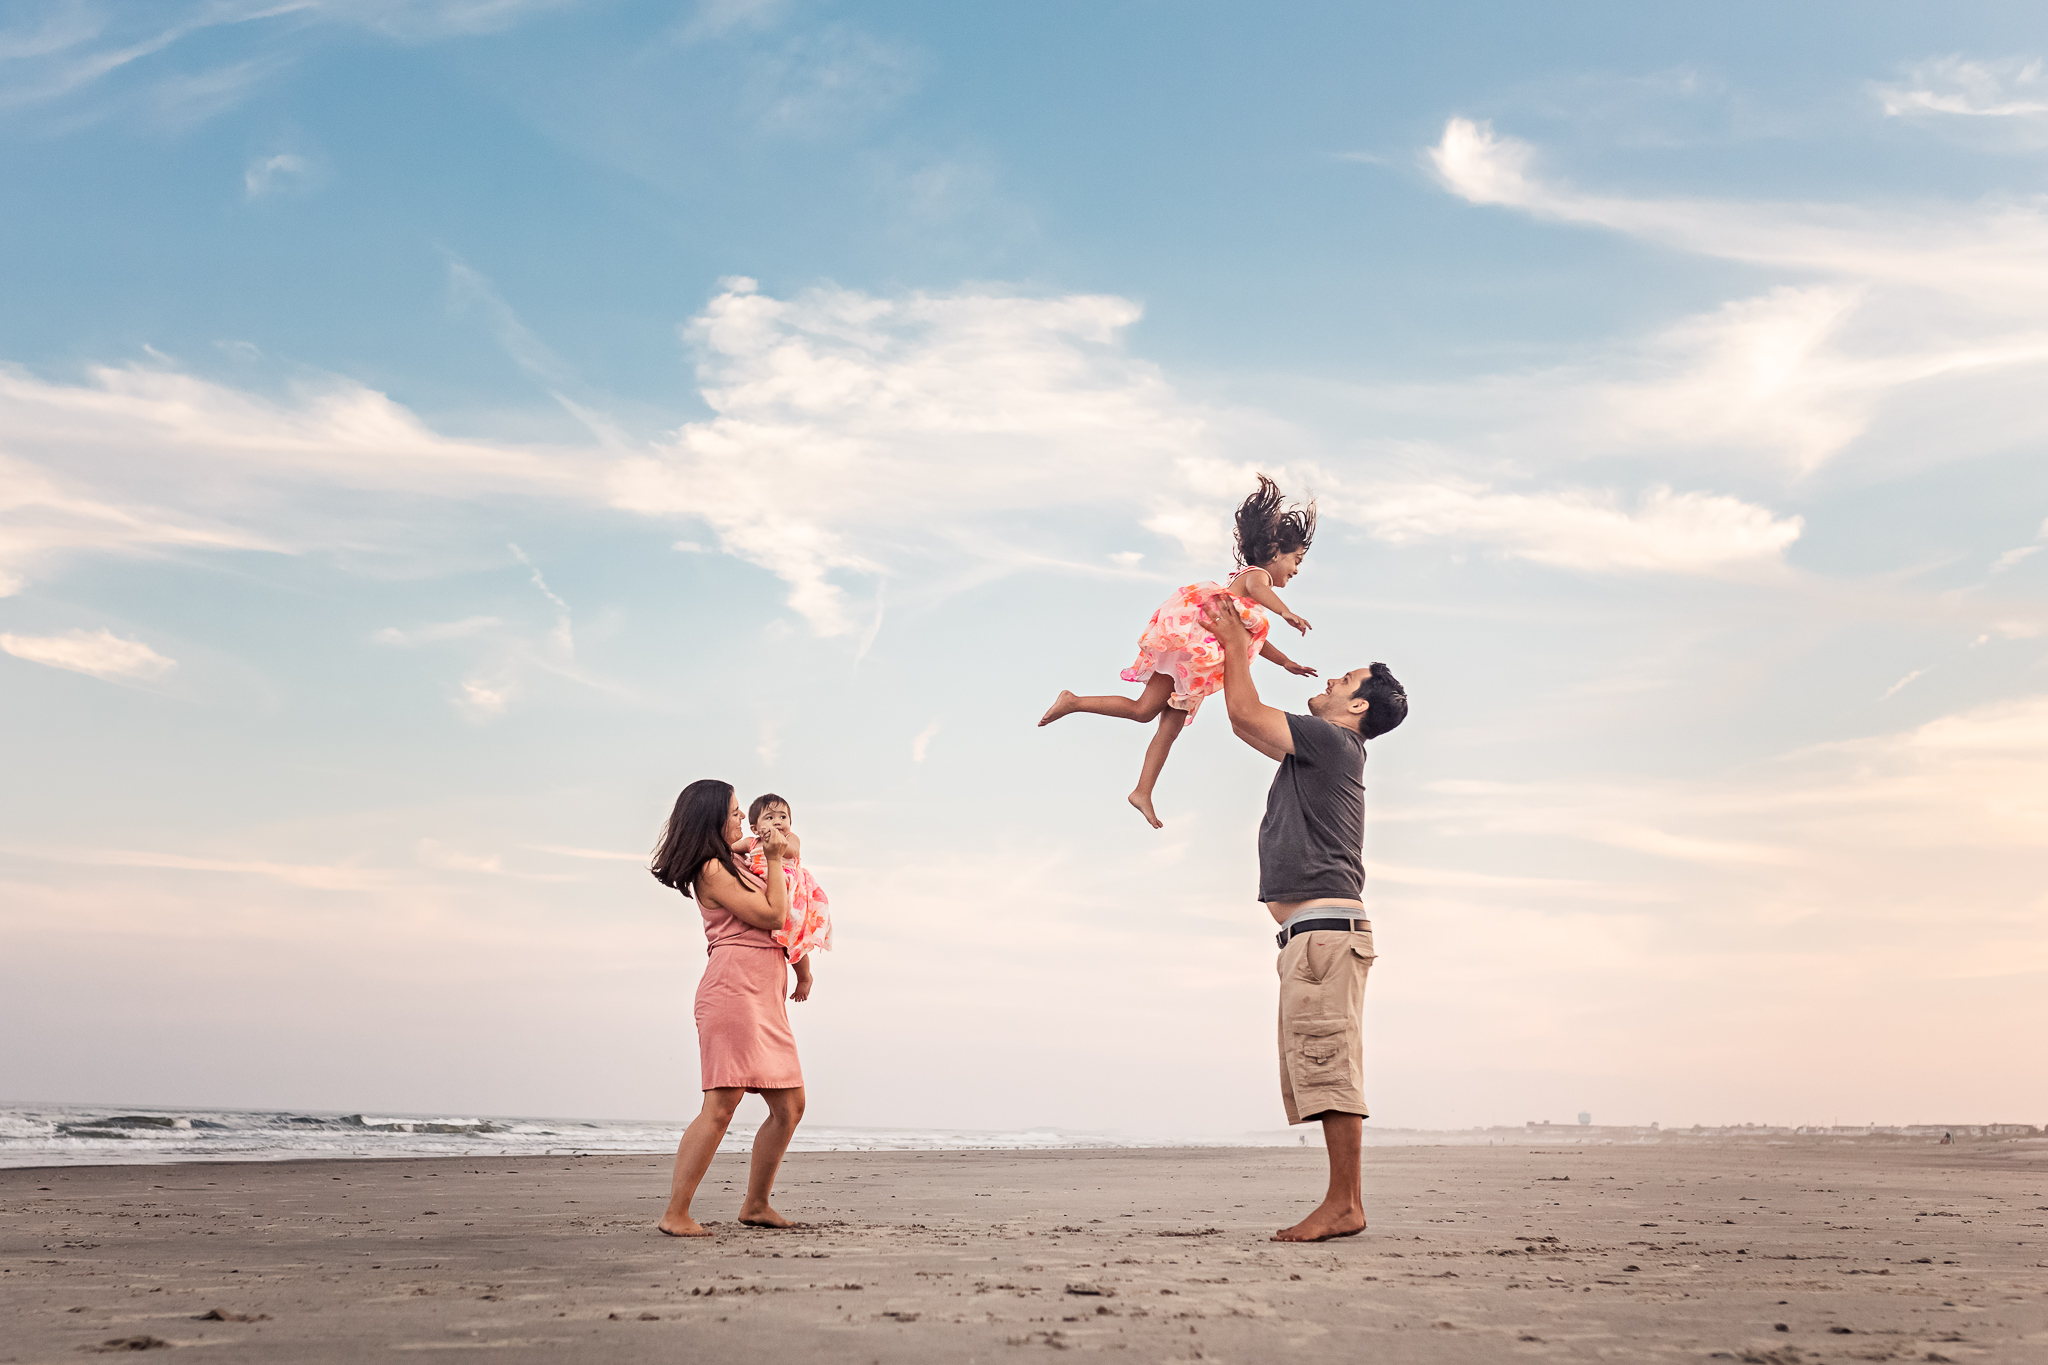 NancyElizabethPhotography, South Jersey Photographer, Family of 4 Playing on Beach